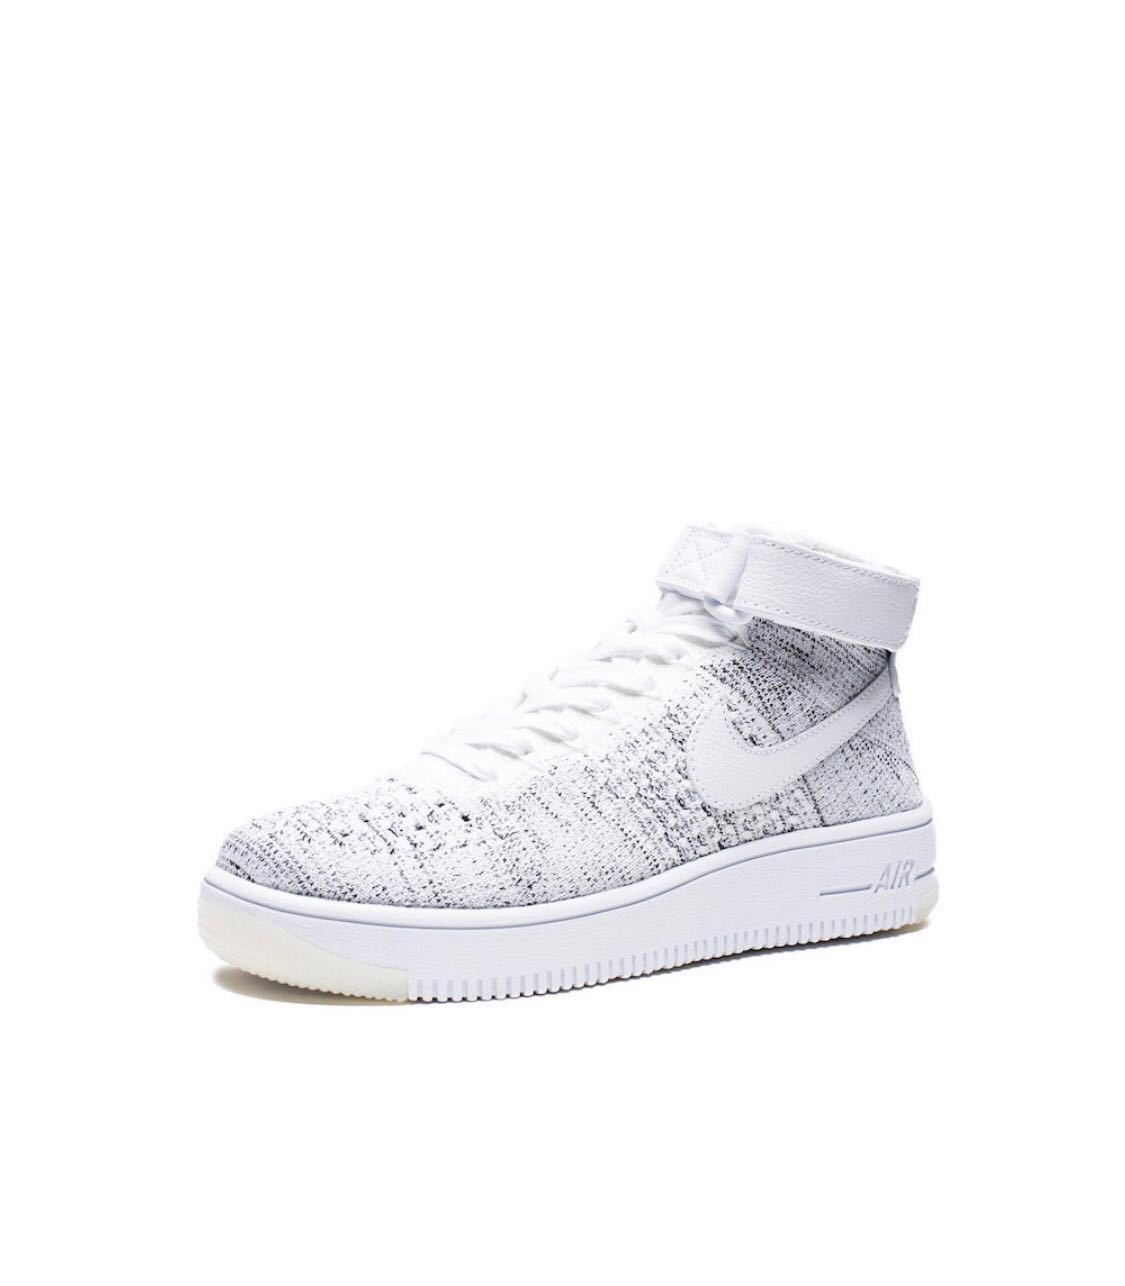 watch 86deb 0c683 Nike air force 1 ultra flyknit, Women s Fashion, Shoes, Sneakers on ...